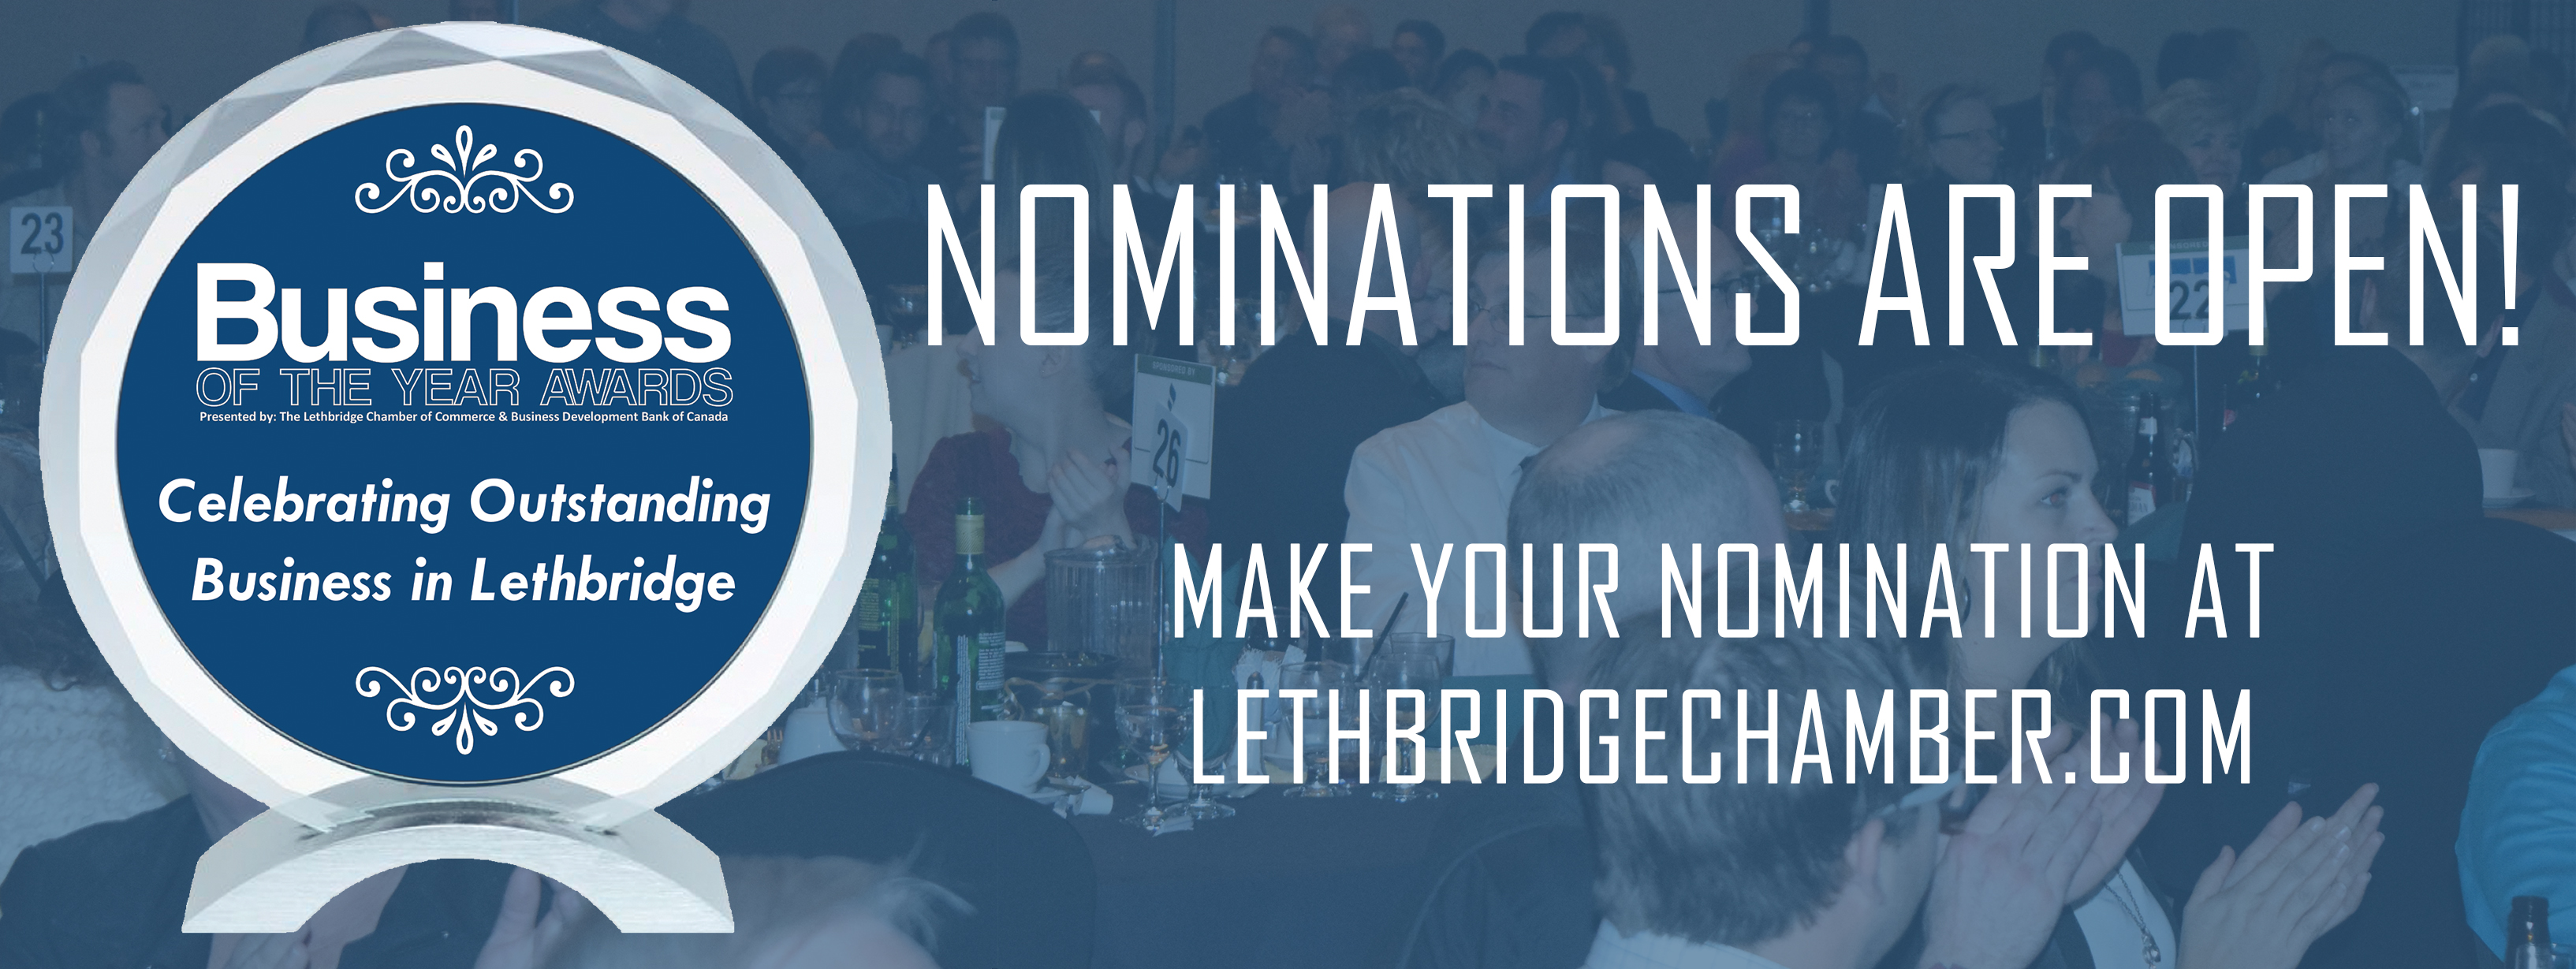 Business of the Year Awards - Lethbridge Chamber of Commerce, AB